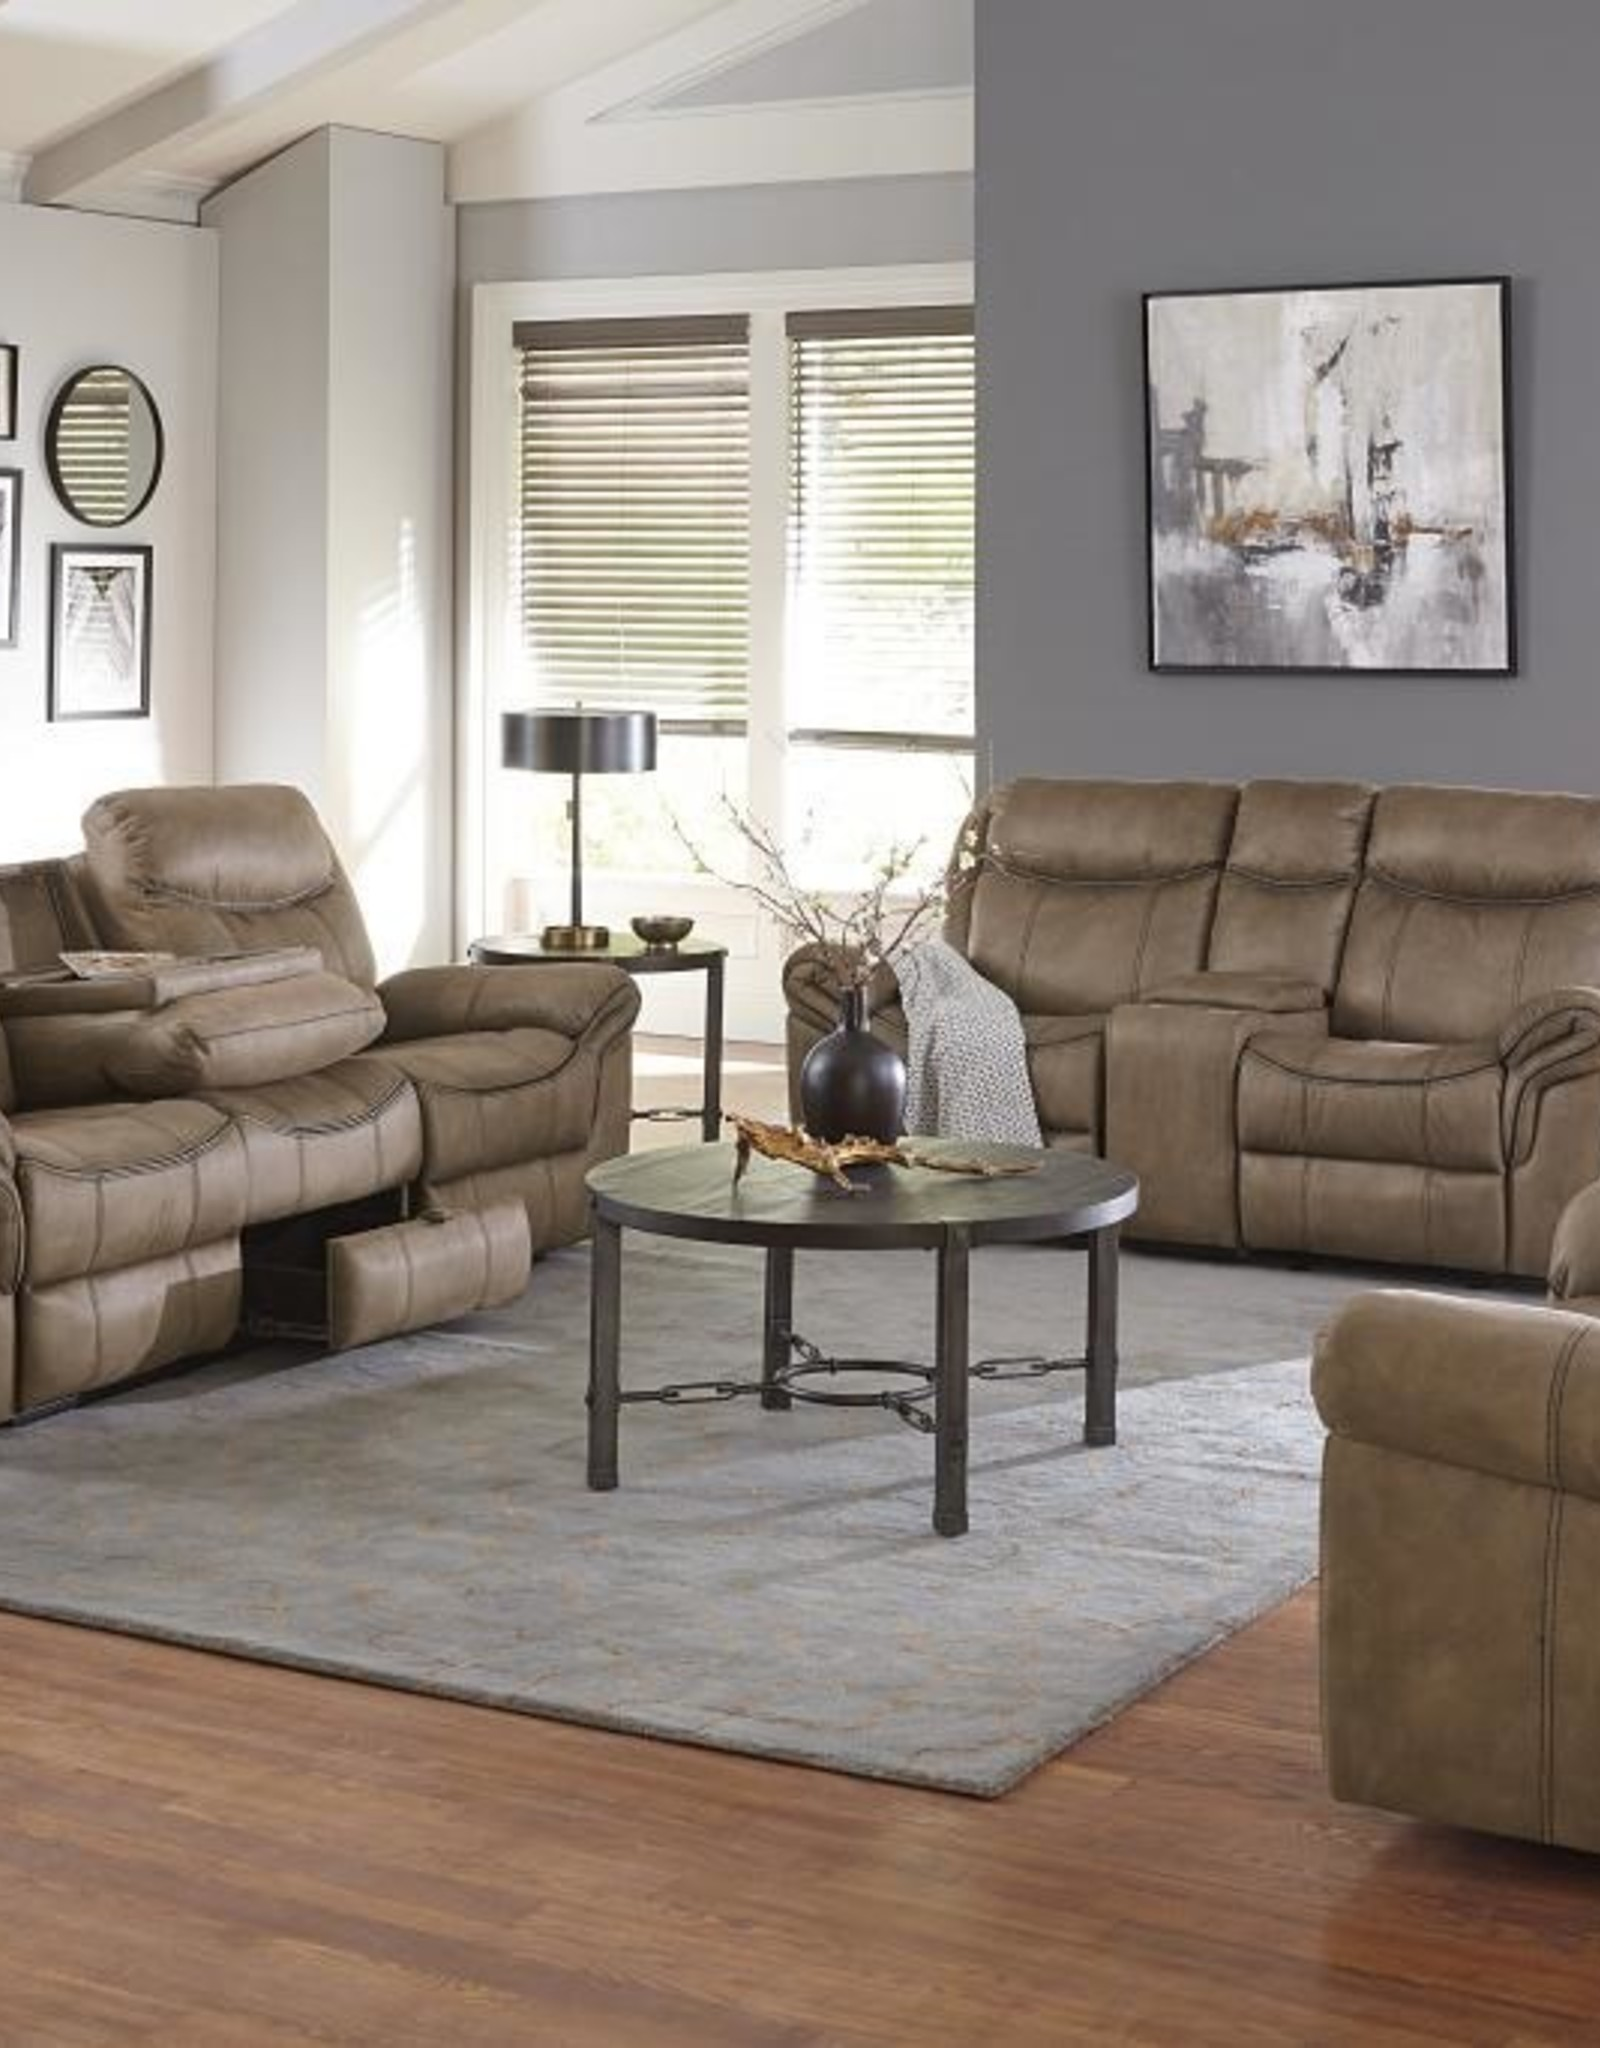 Standard Furniture Knoxville Mocha Brown Dual-Reclining Sofa w/ Drop Table